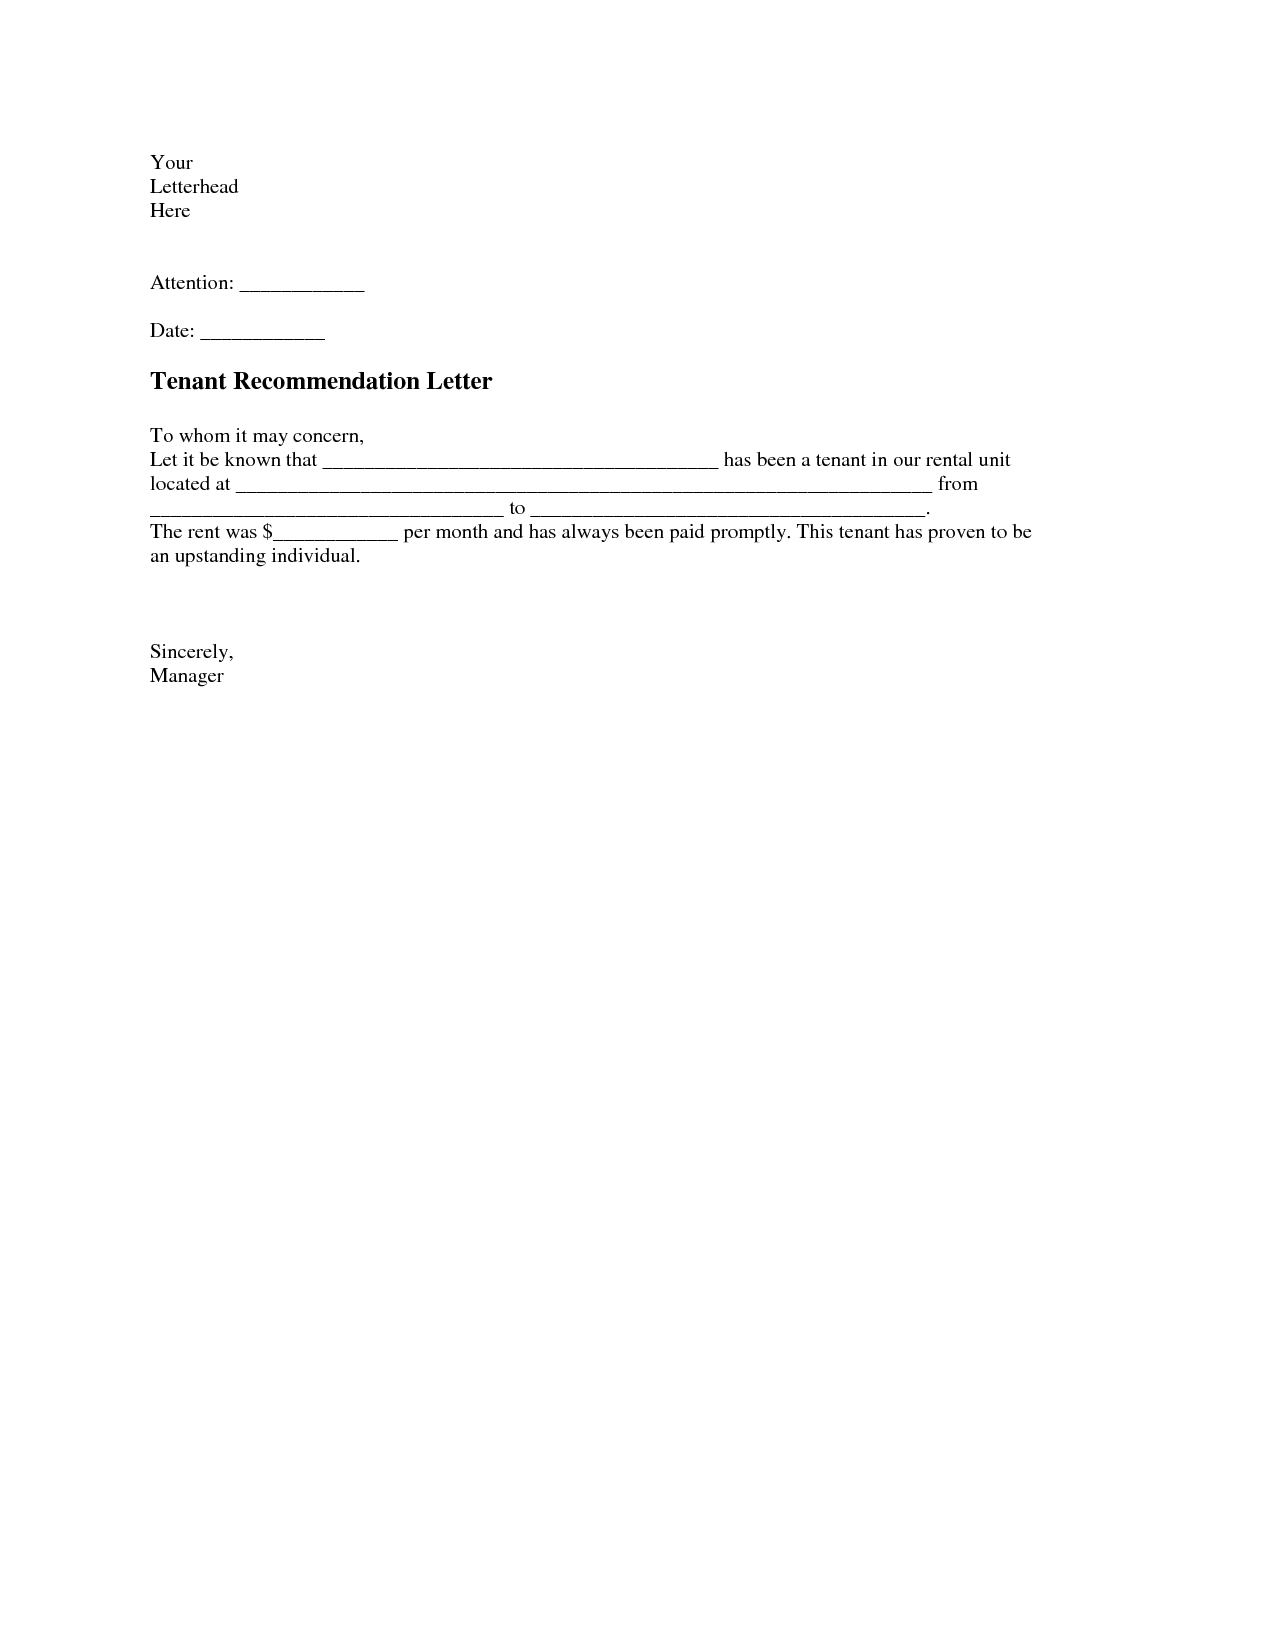 Rental Reference Letter Template - Tenant Re Mendation Letter A Tenant Re Mendation Letter is